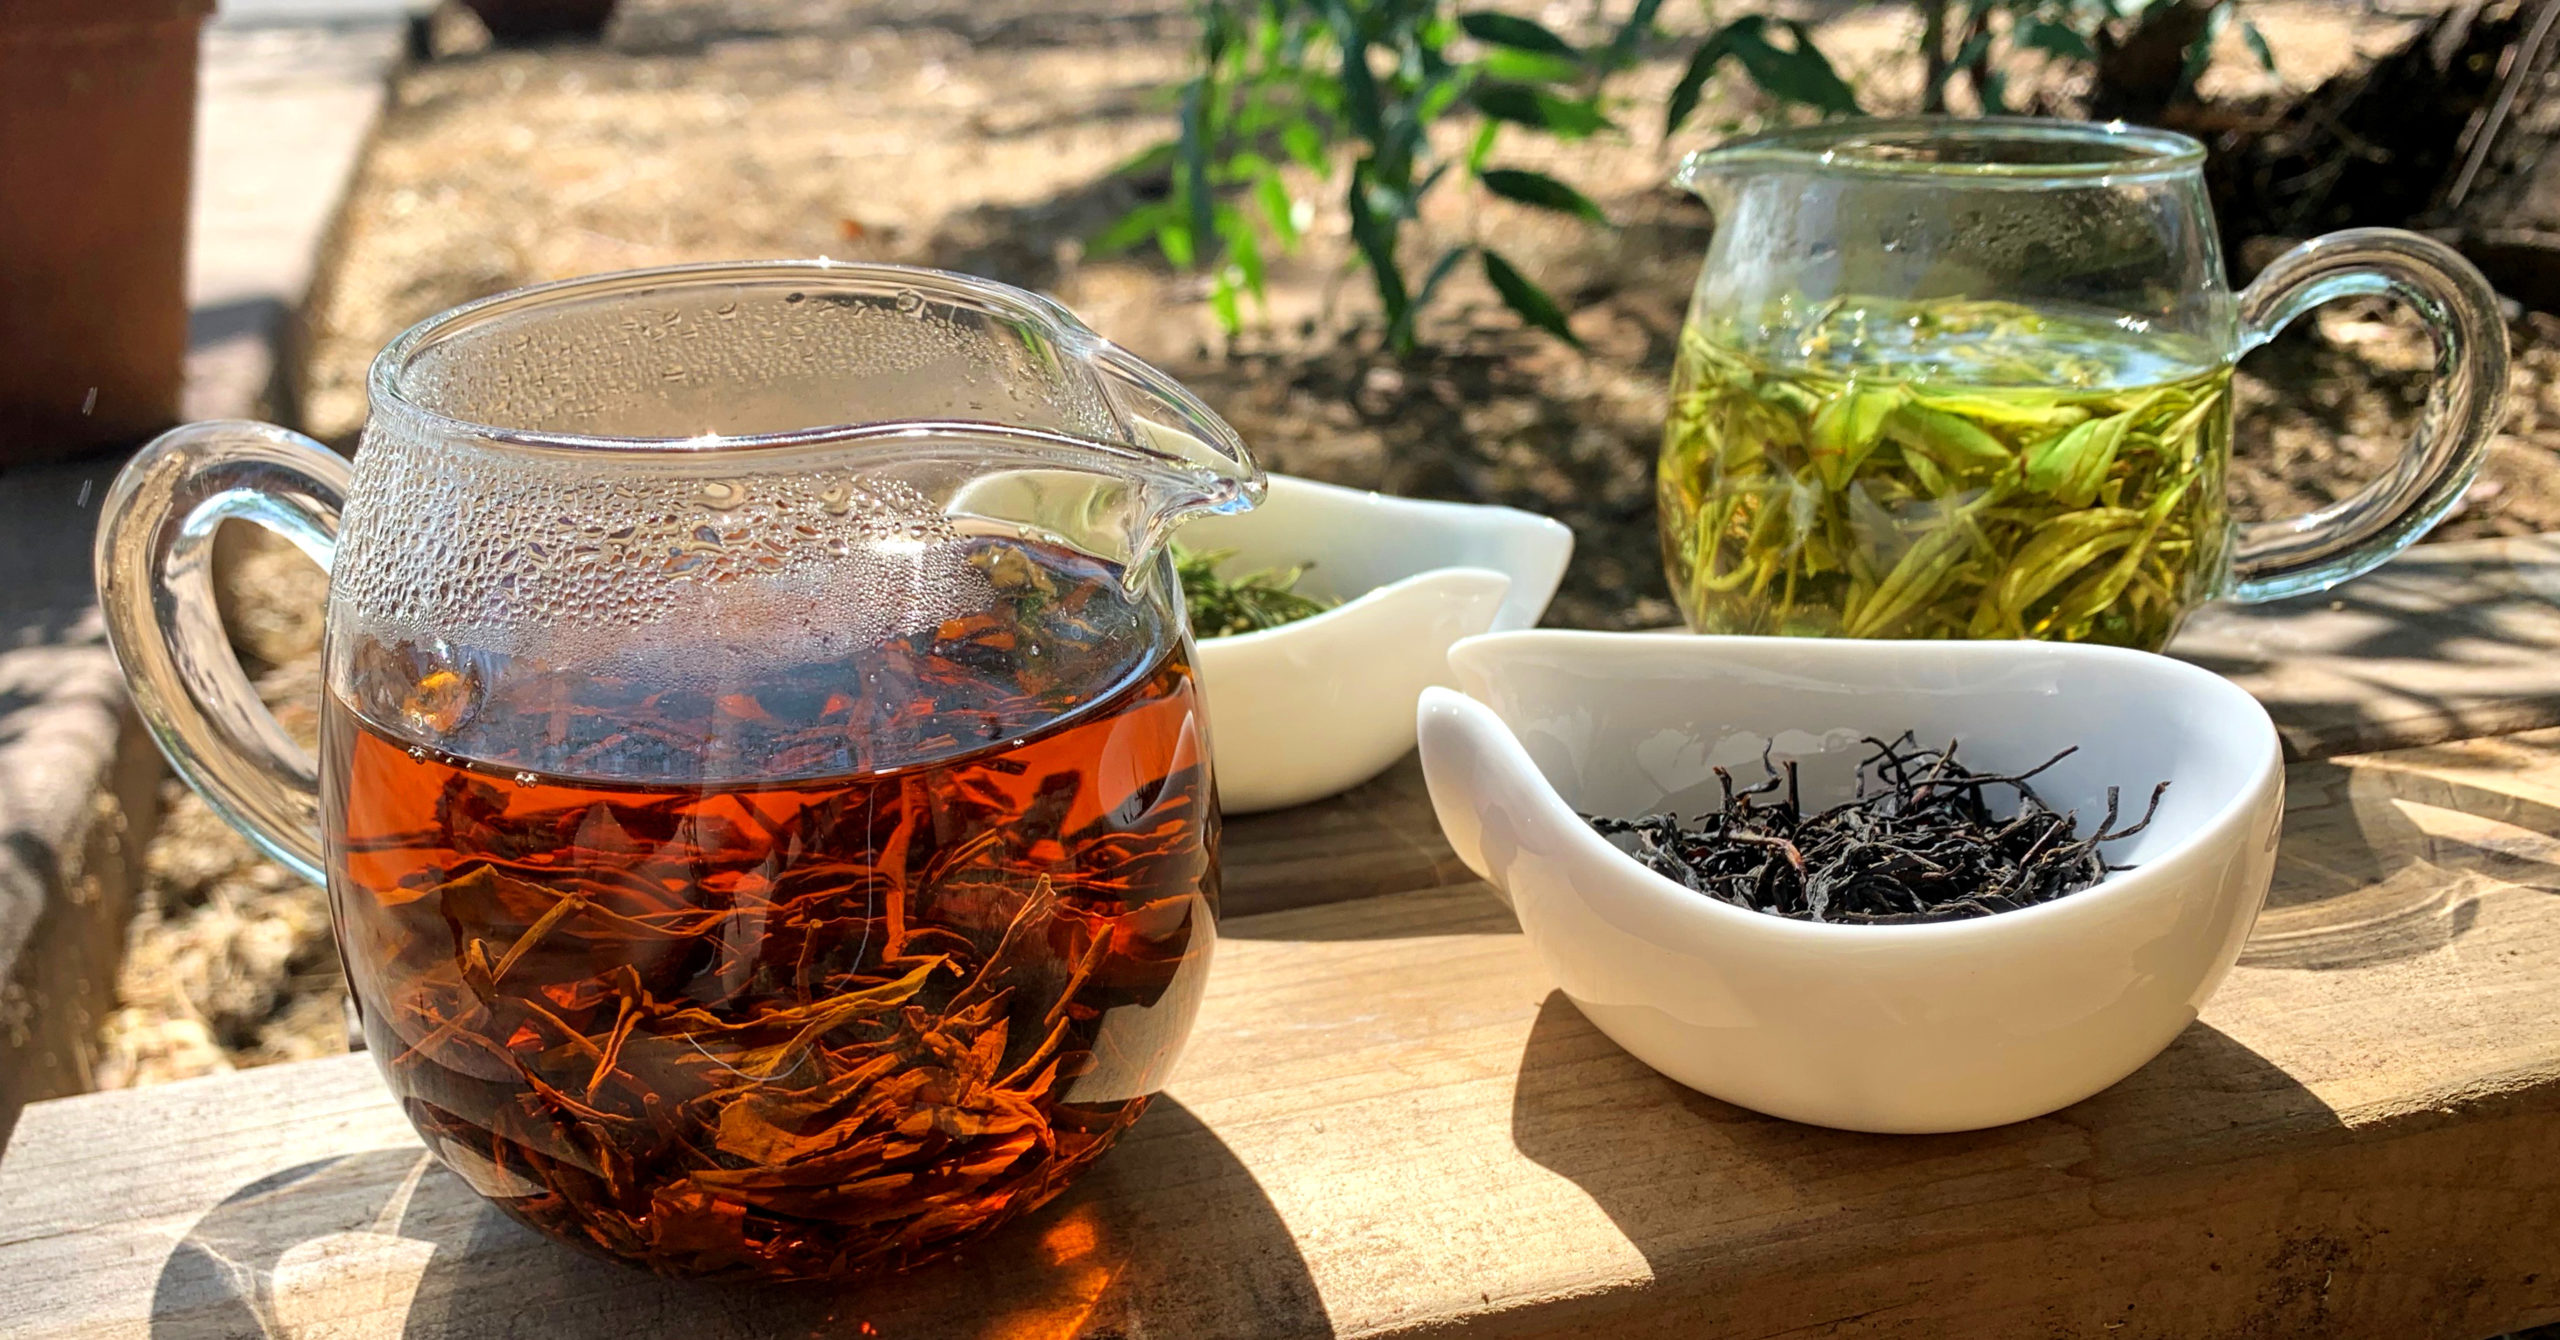 Two glass pitchers of green and black tea and two porcelain dishes of their dry leaves, outside on a wooden plank in the sunlight.